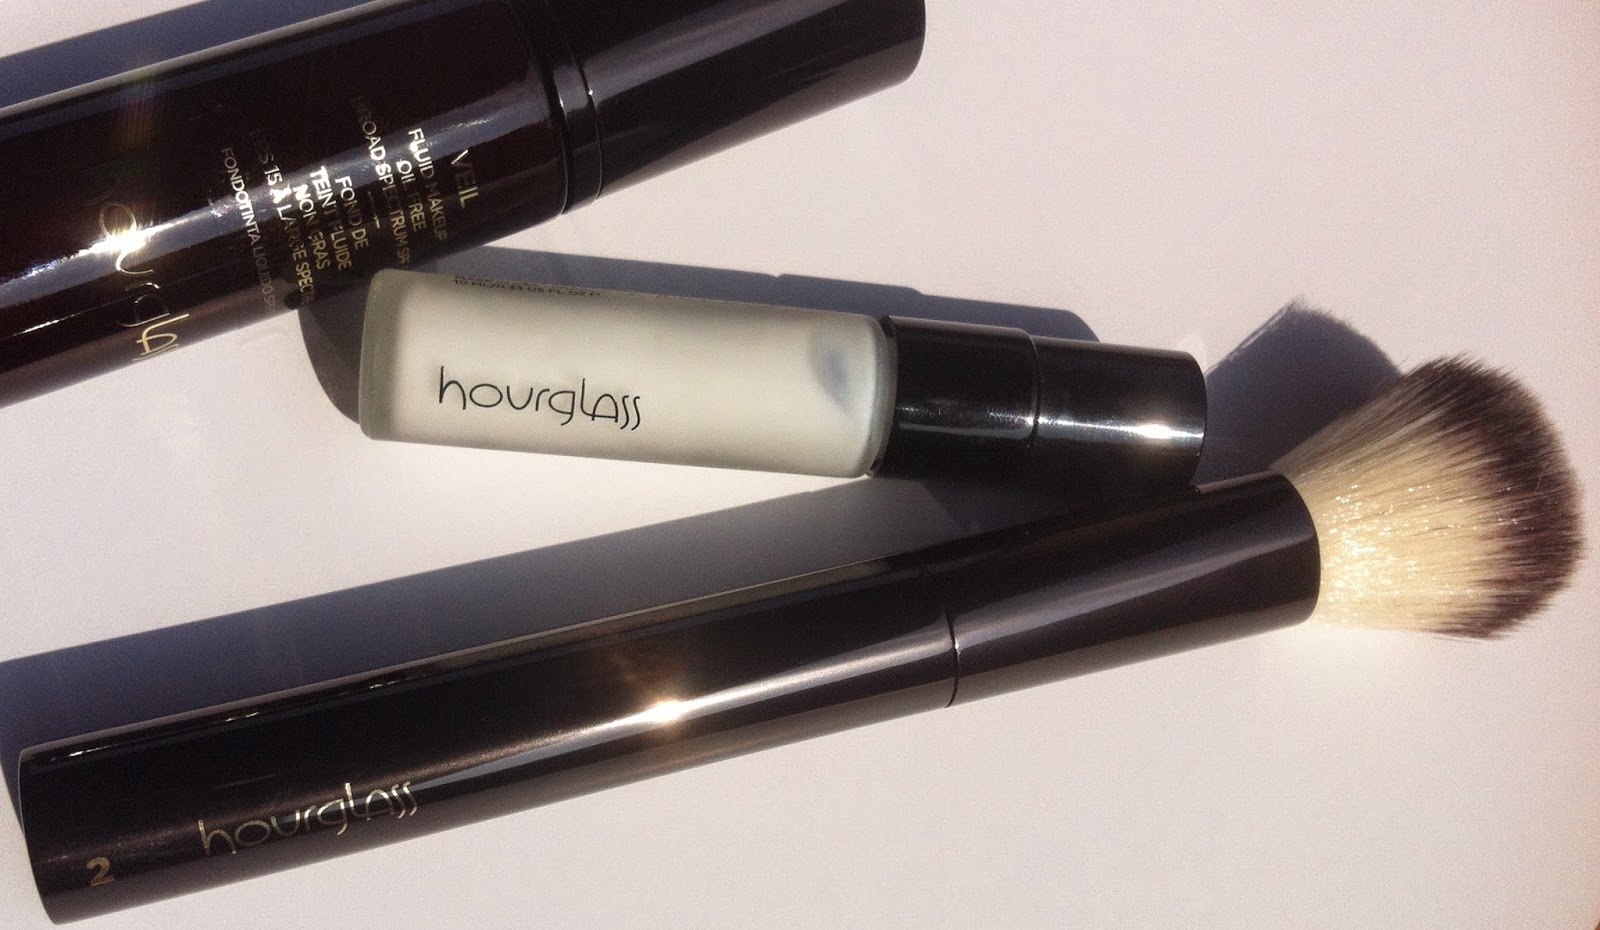 hourglass cosmetics italia, veil primer recensione review, veil fluid make up, brush no 2